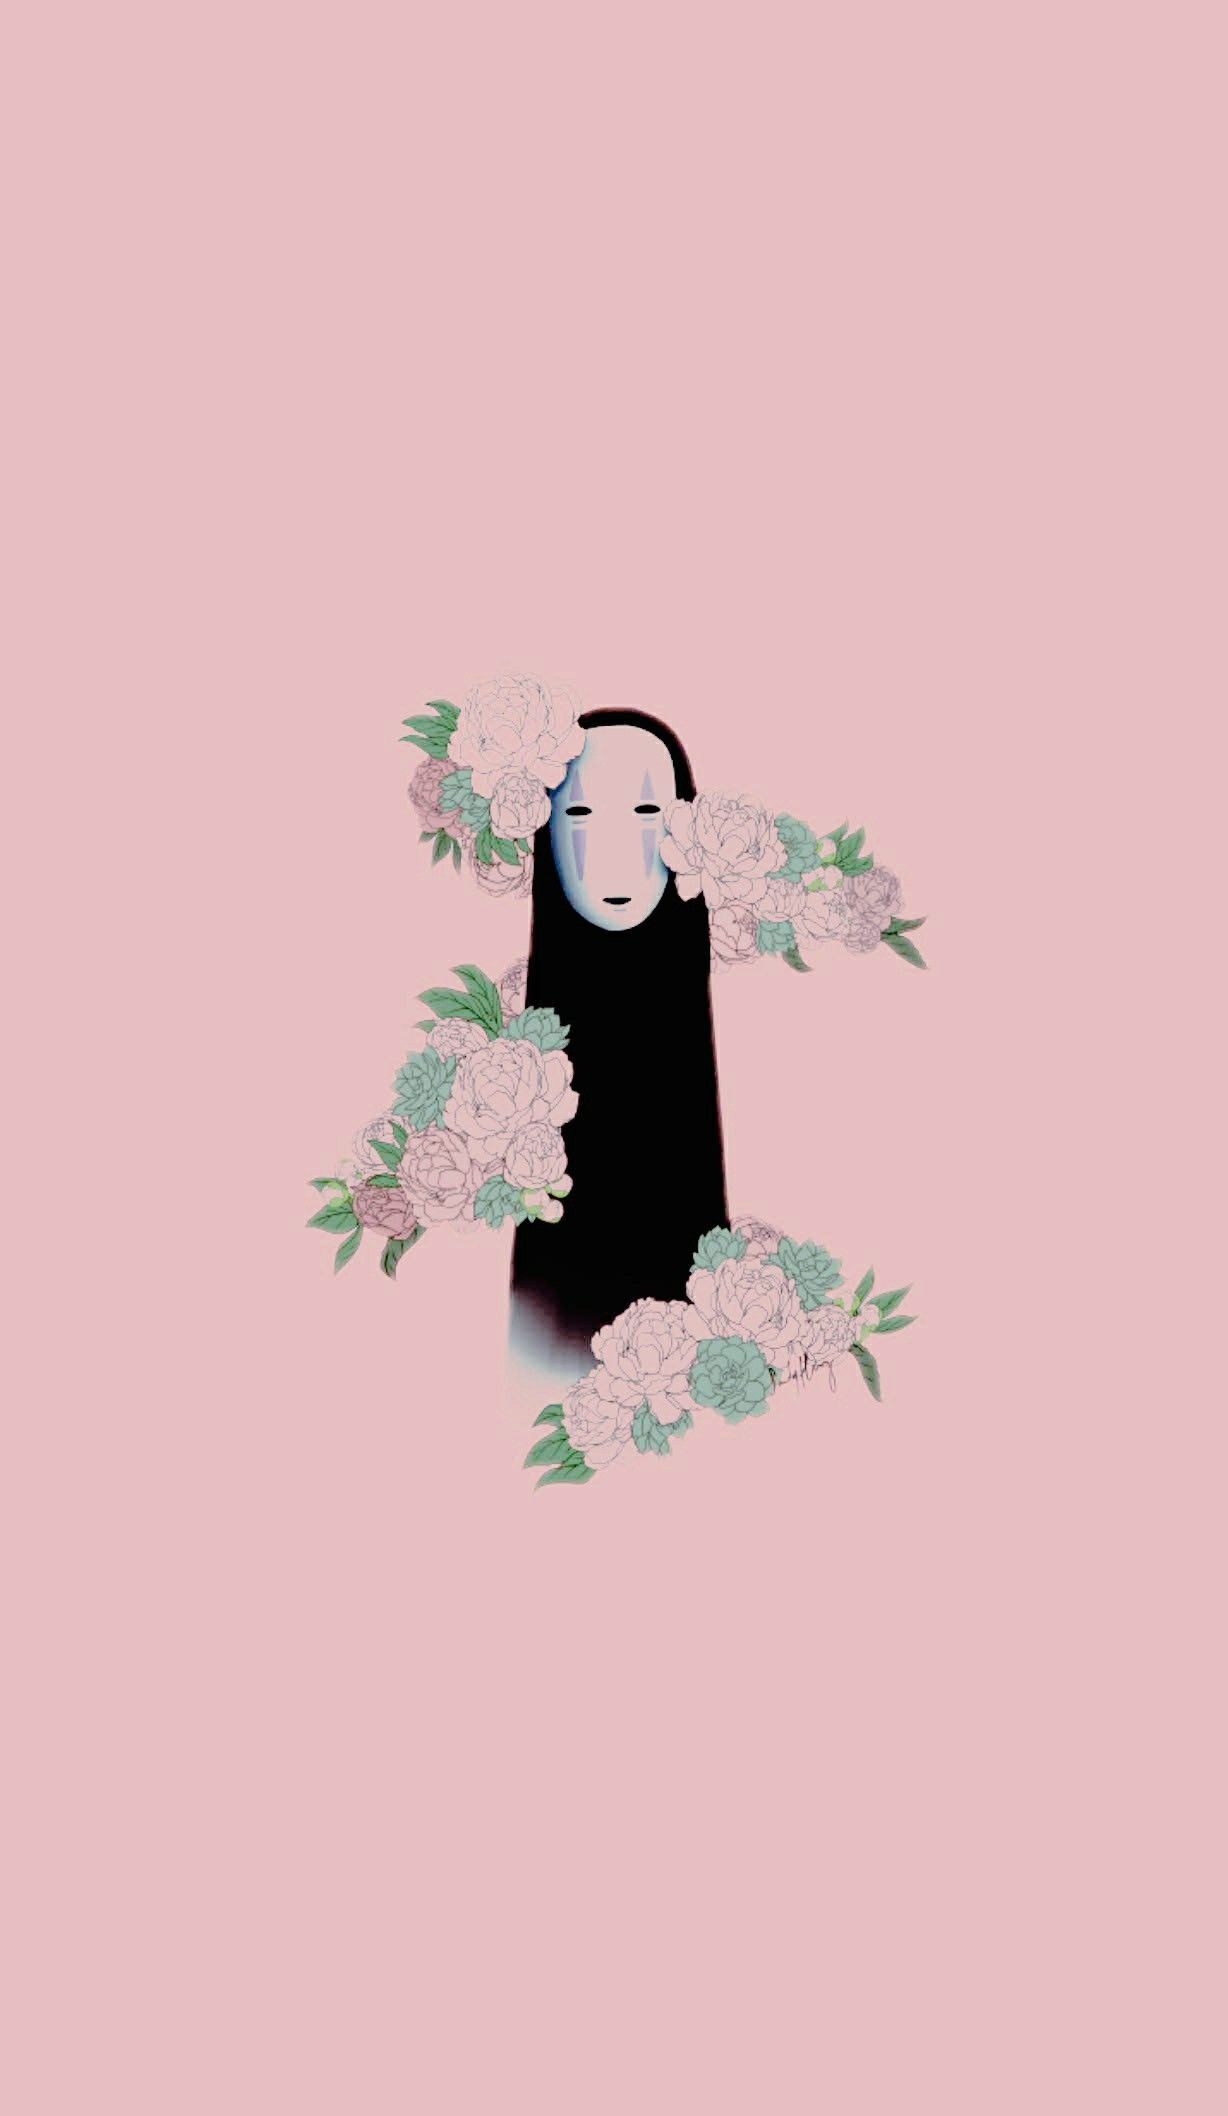 No Face Wallpaper Posted By Zoey Tremblay